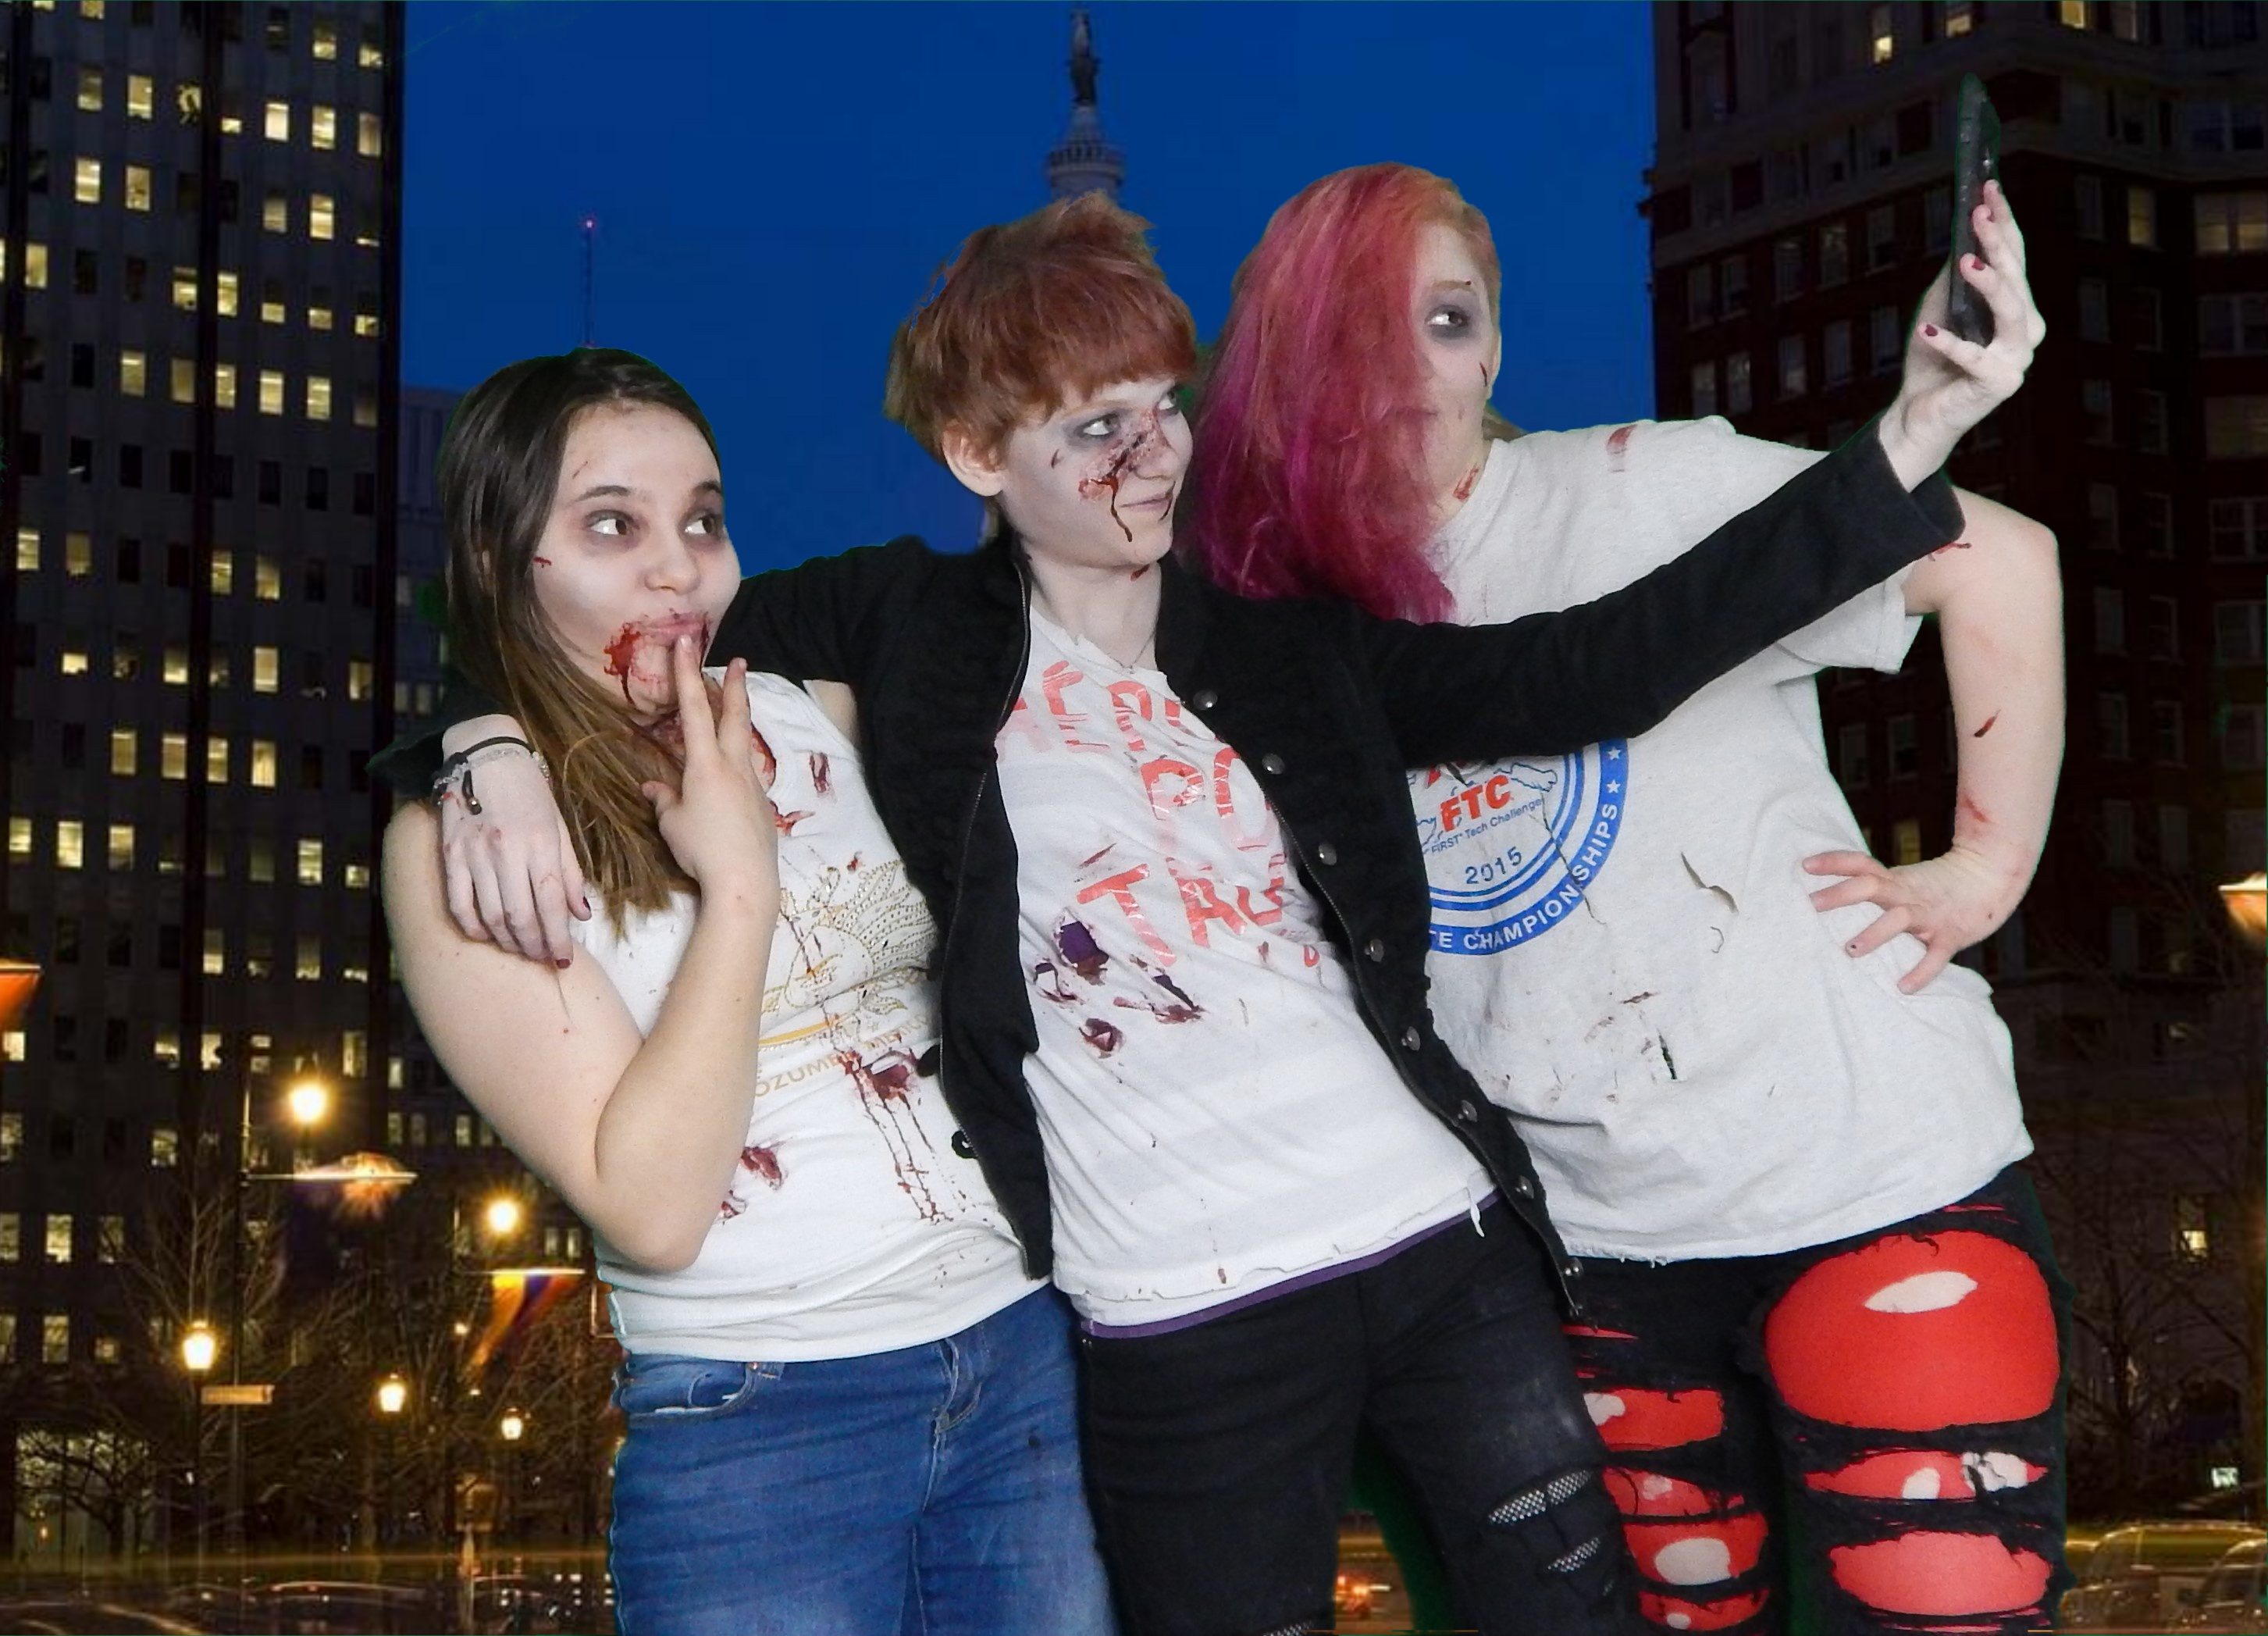 zombies on the town